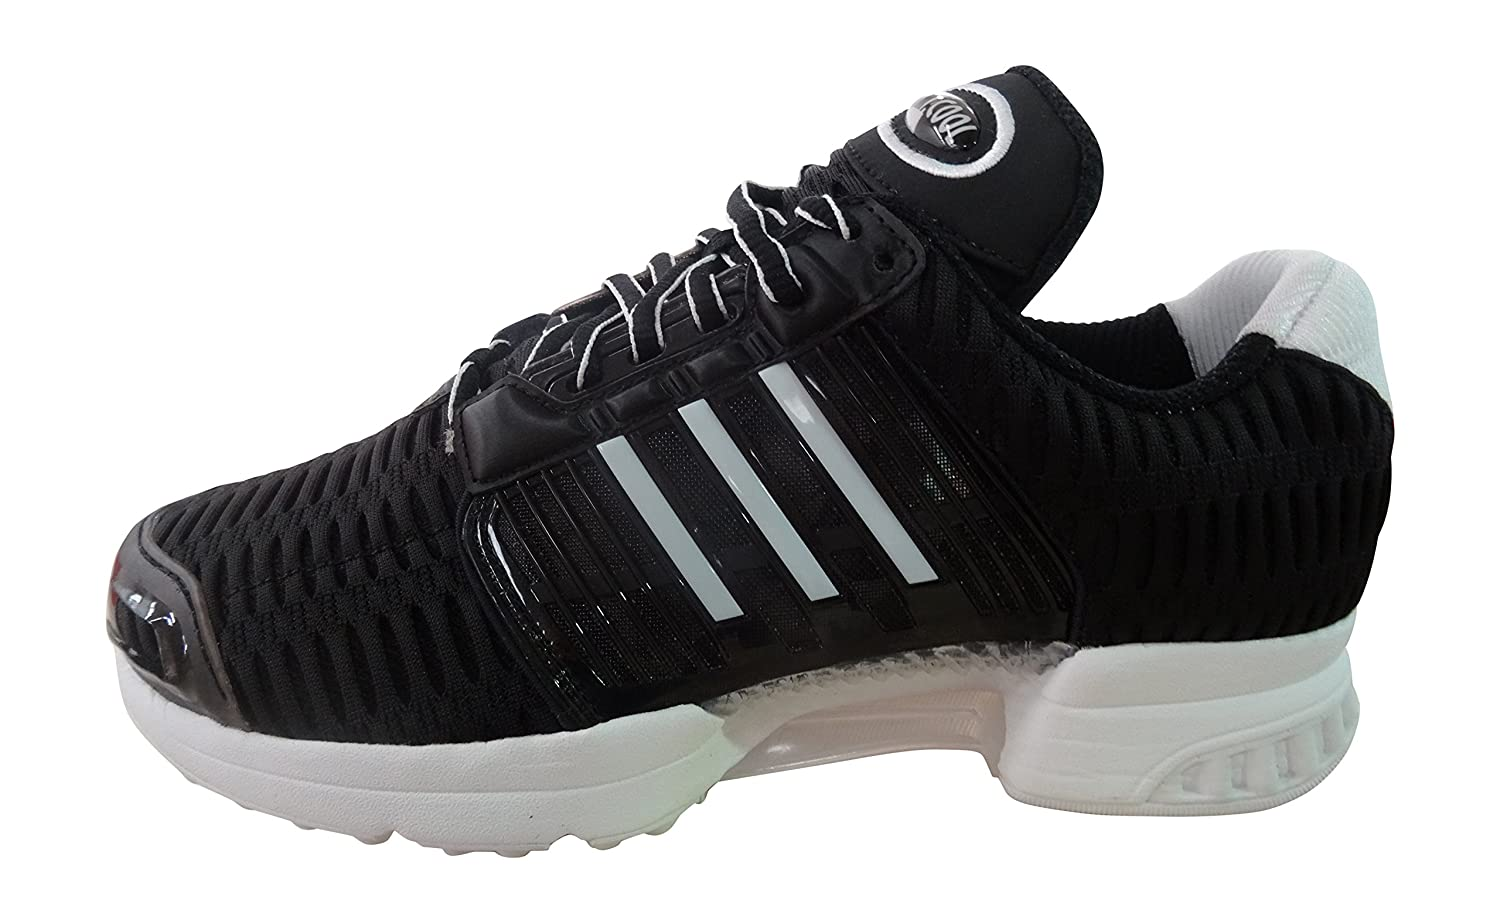 adidas Originals Men's ' Clima Cool Trainers B01HQC3EIY 8.5 D(M) US|Black/Black/White